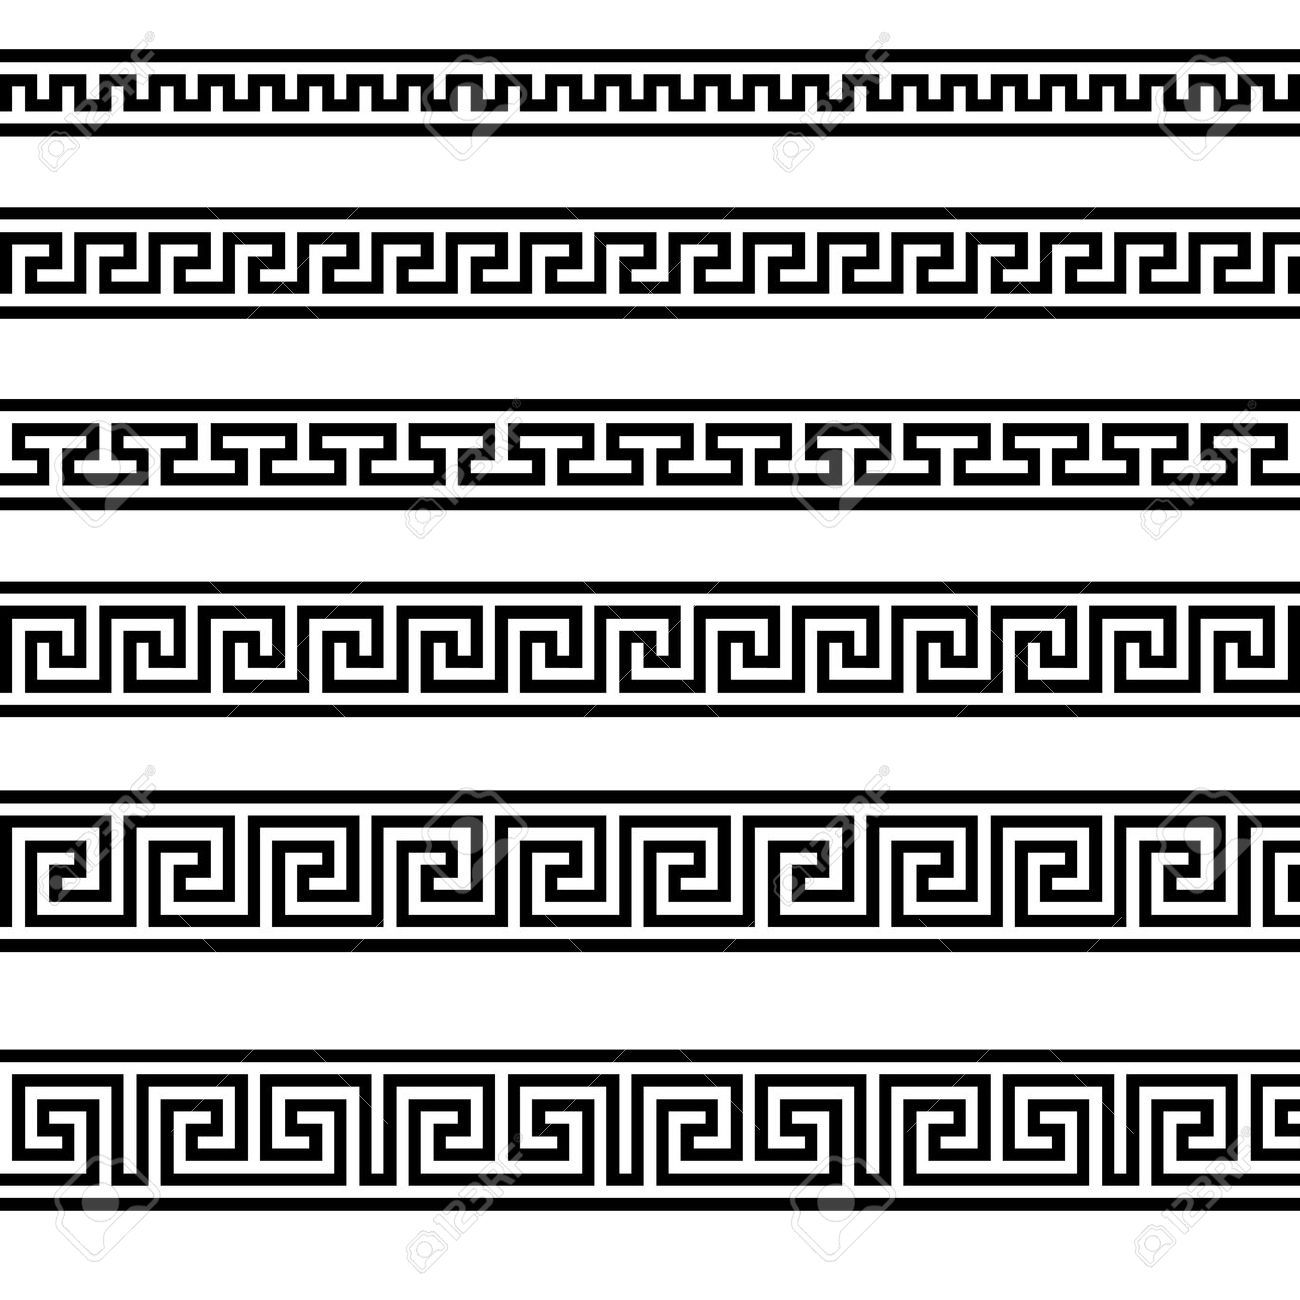 13 awesome greek geometric patterns images geometric greek art 13 awesome greek geometric patterns images reviewsmspy